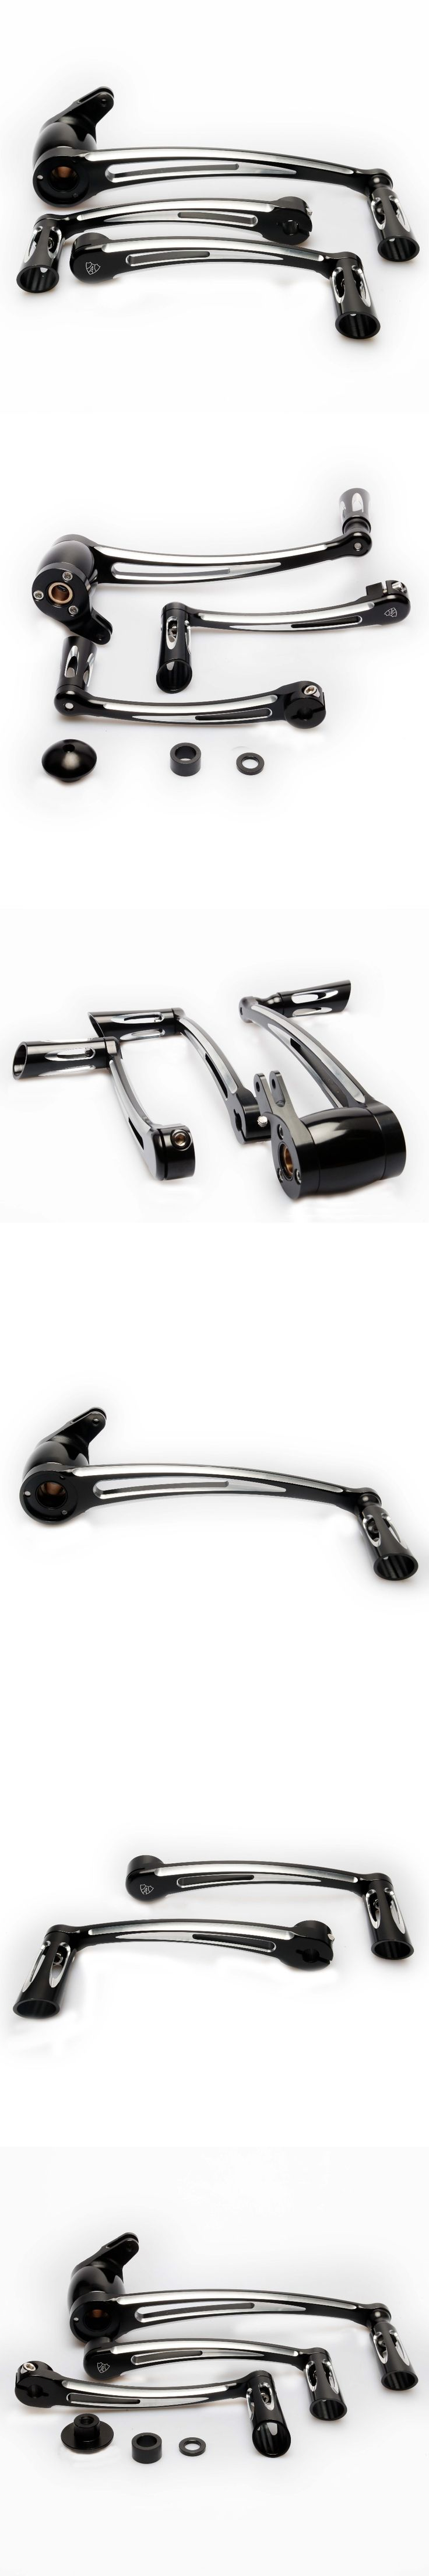 Motorcycle accessories Deep Cut Brake Arm Shift Lever Pegs For Harley Roadking glide ultra Tri 14 15 16